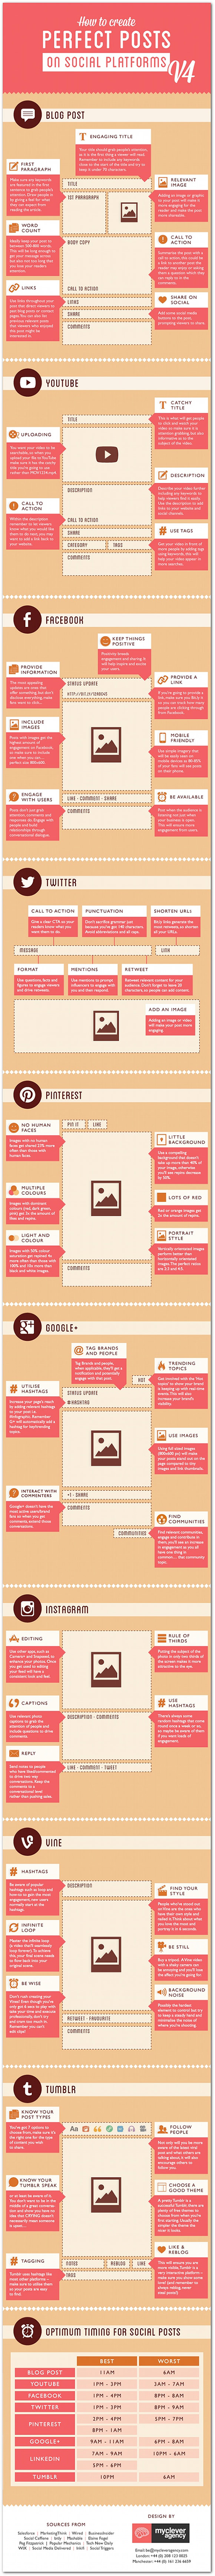 1404237720-guide-perfect-social-media-posts-infographic-4